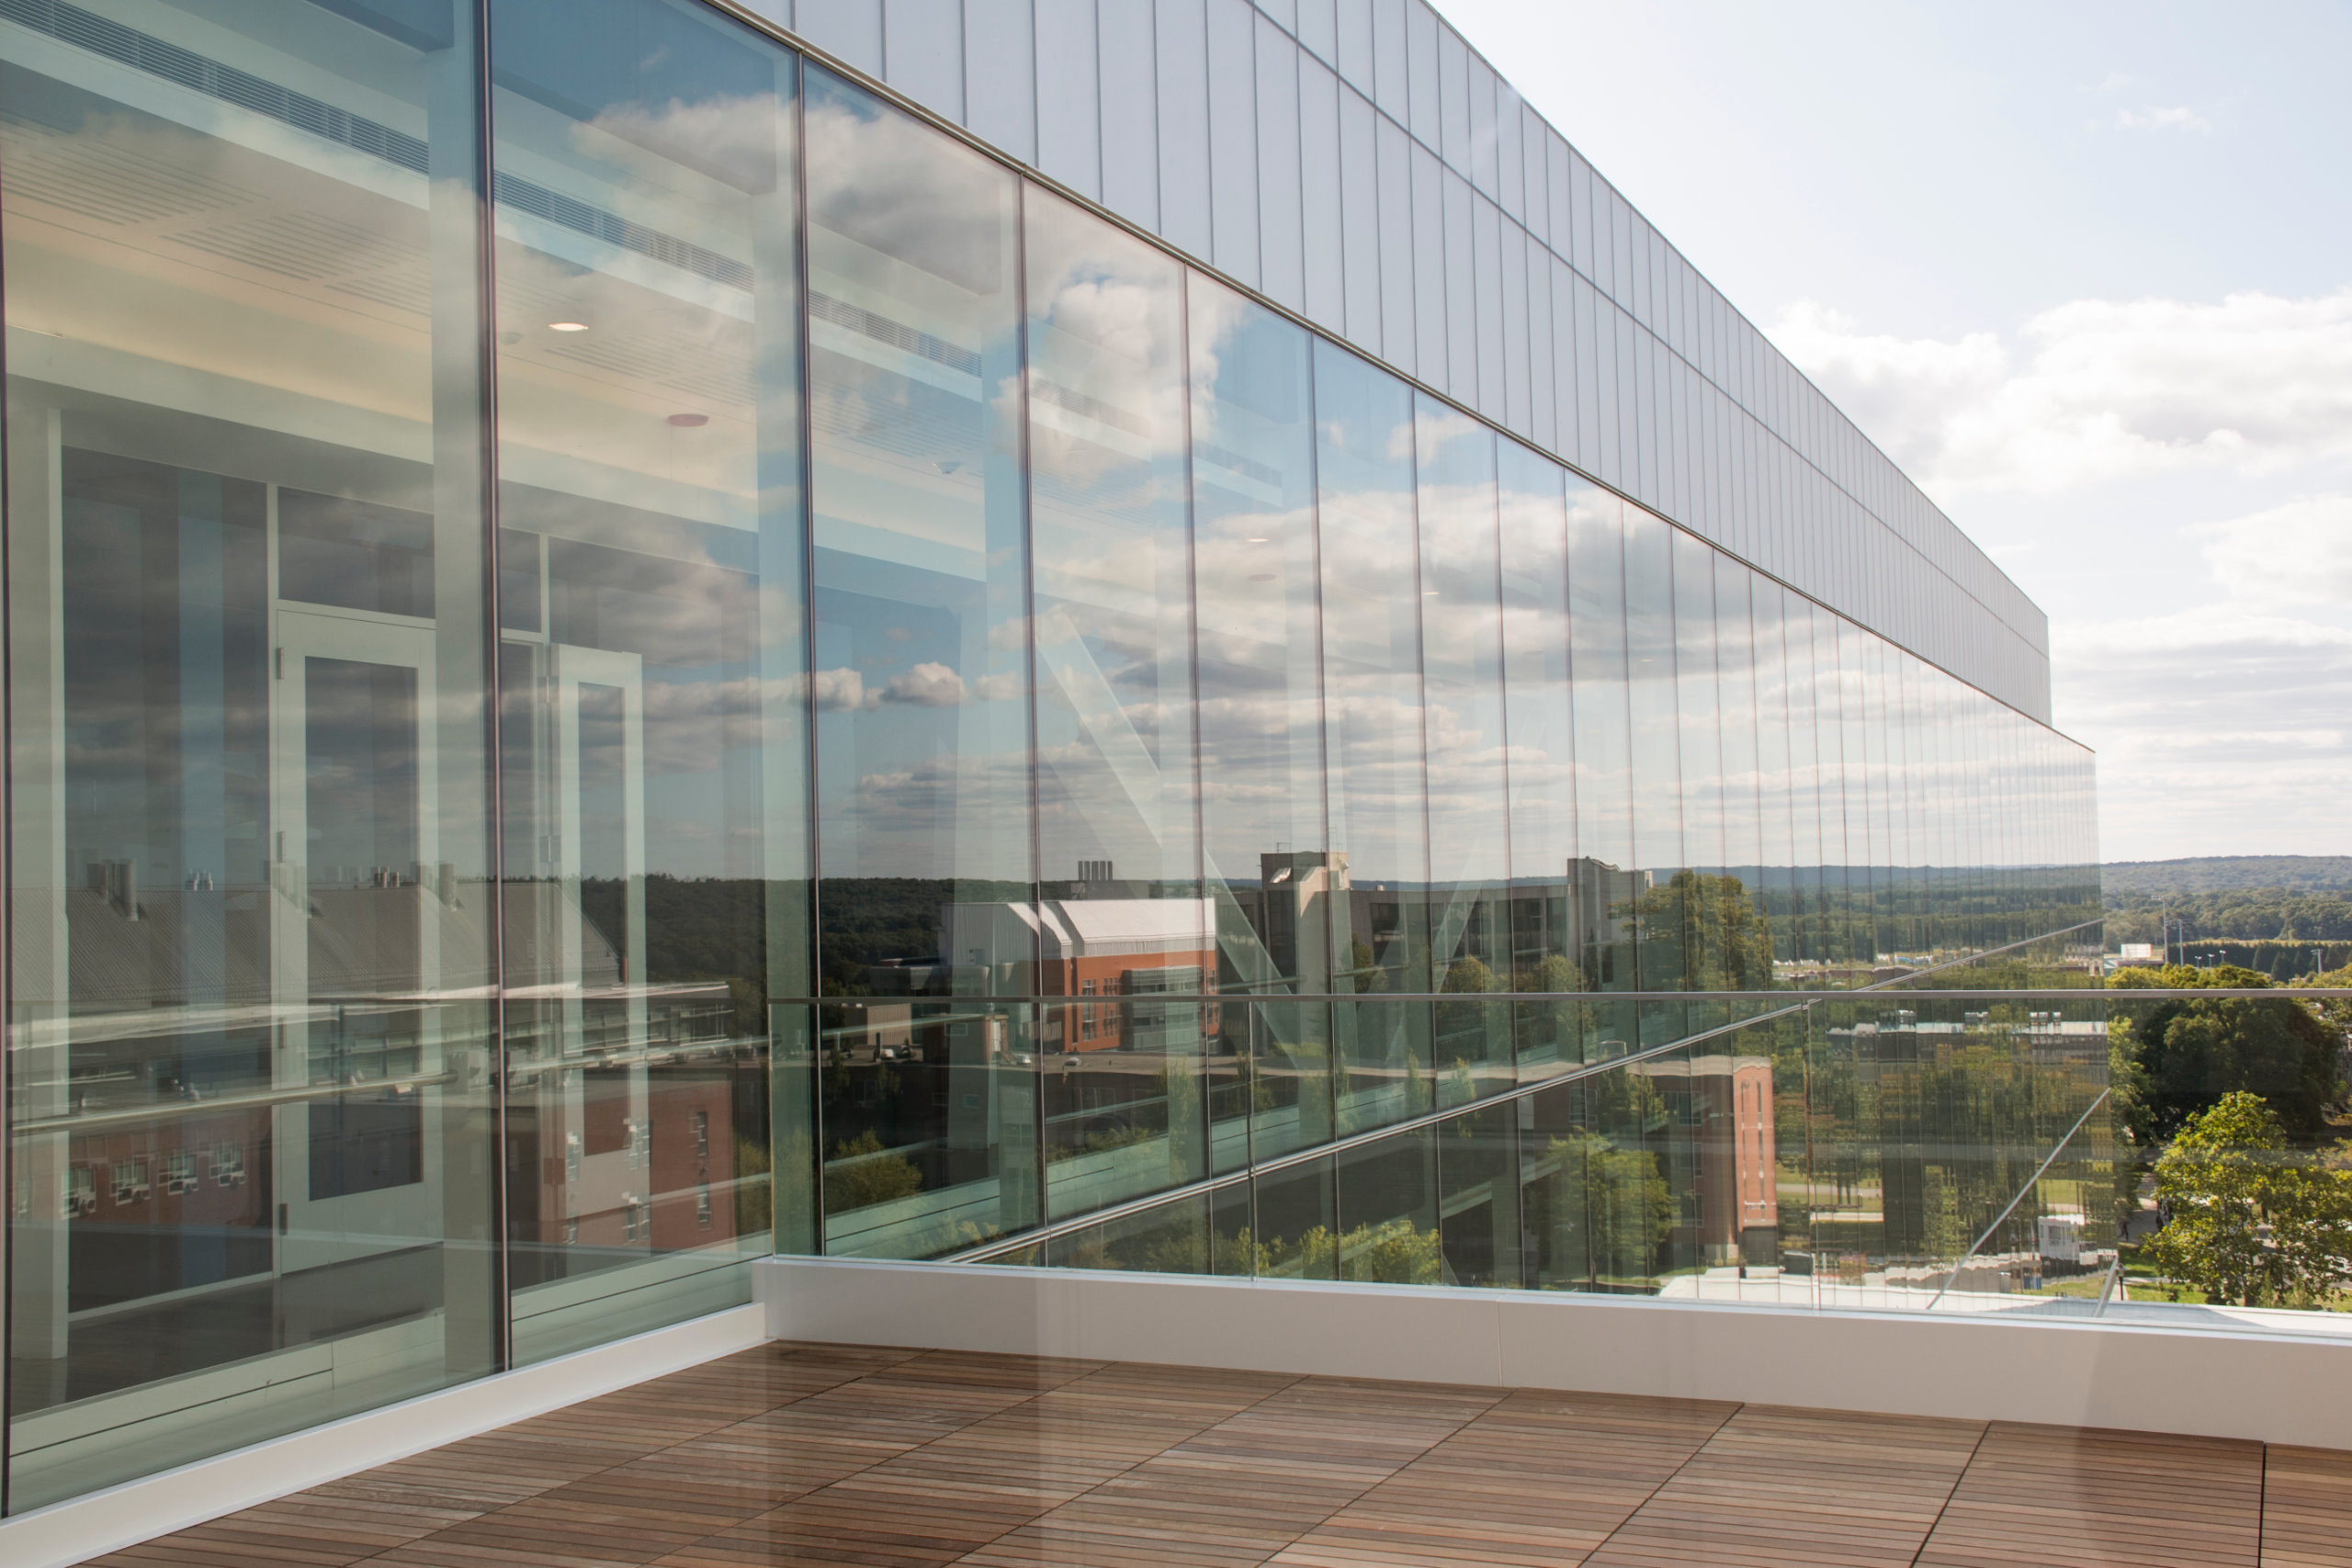 A view from the fourth floor patio of the Fascitelli Center for Advanced Engineering